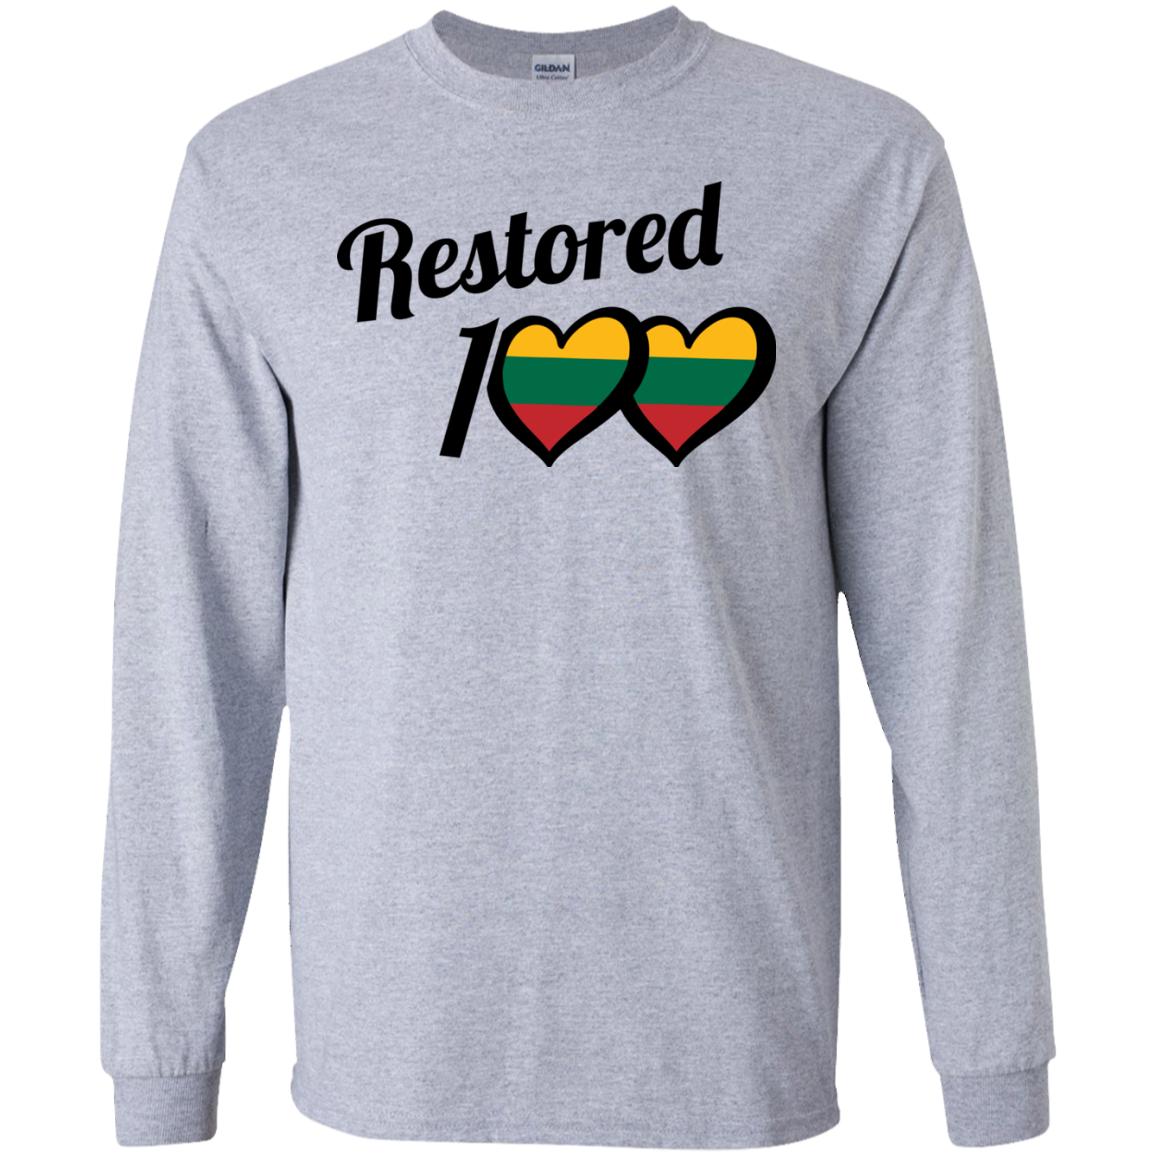 Restored 100 (100 Love) -- Vyrams Long Sleeve T-Shirt